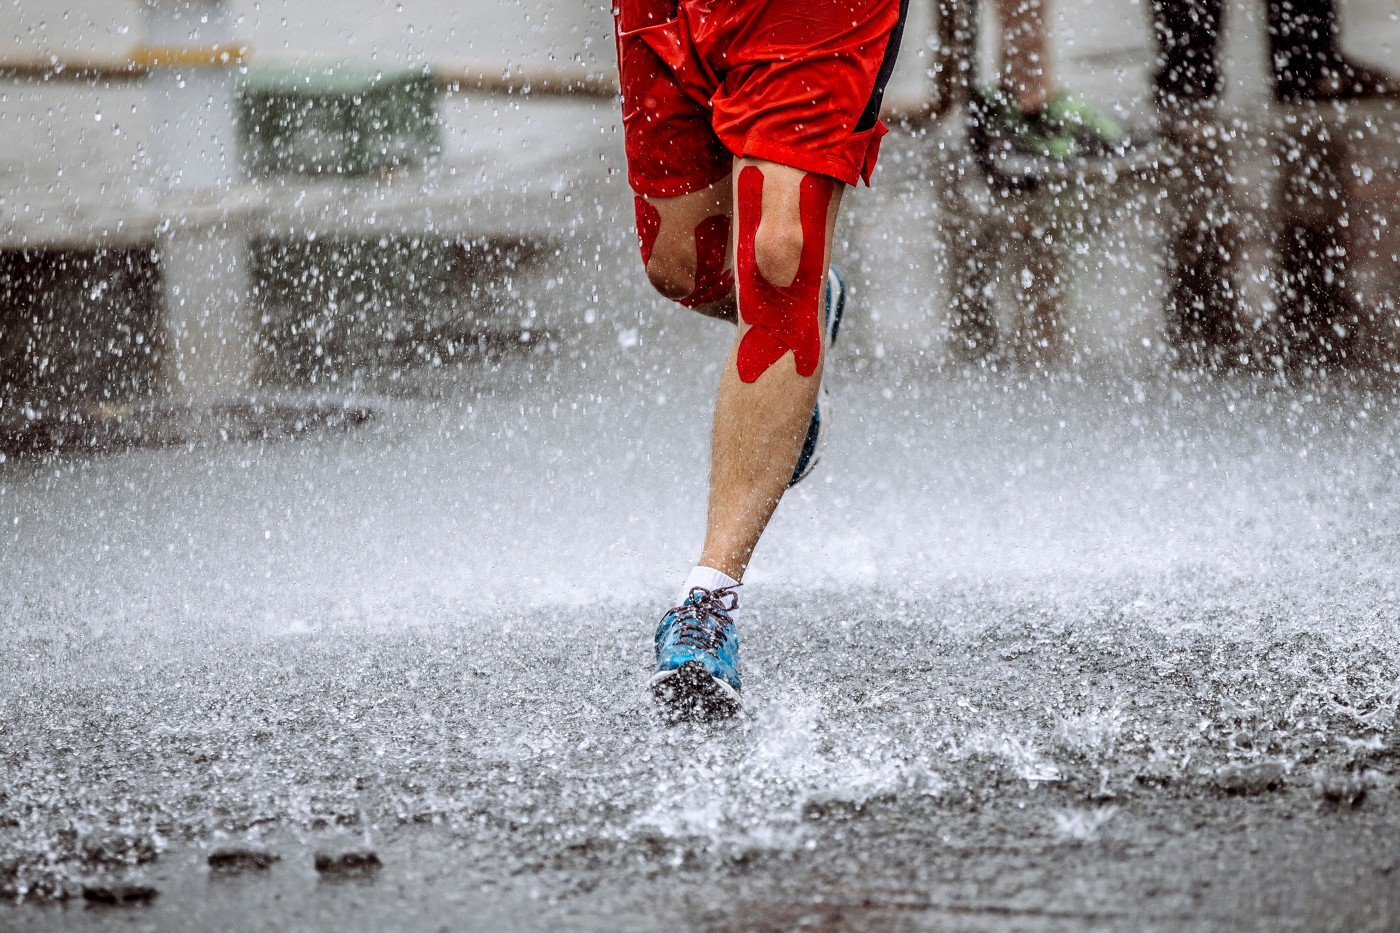 picture of runners legs, splashing on a wet road